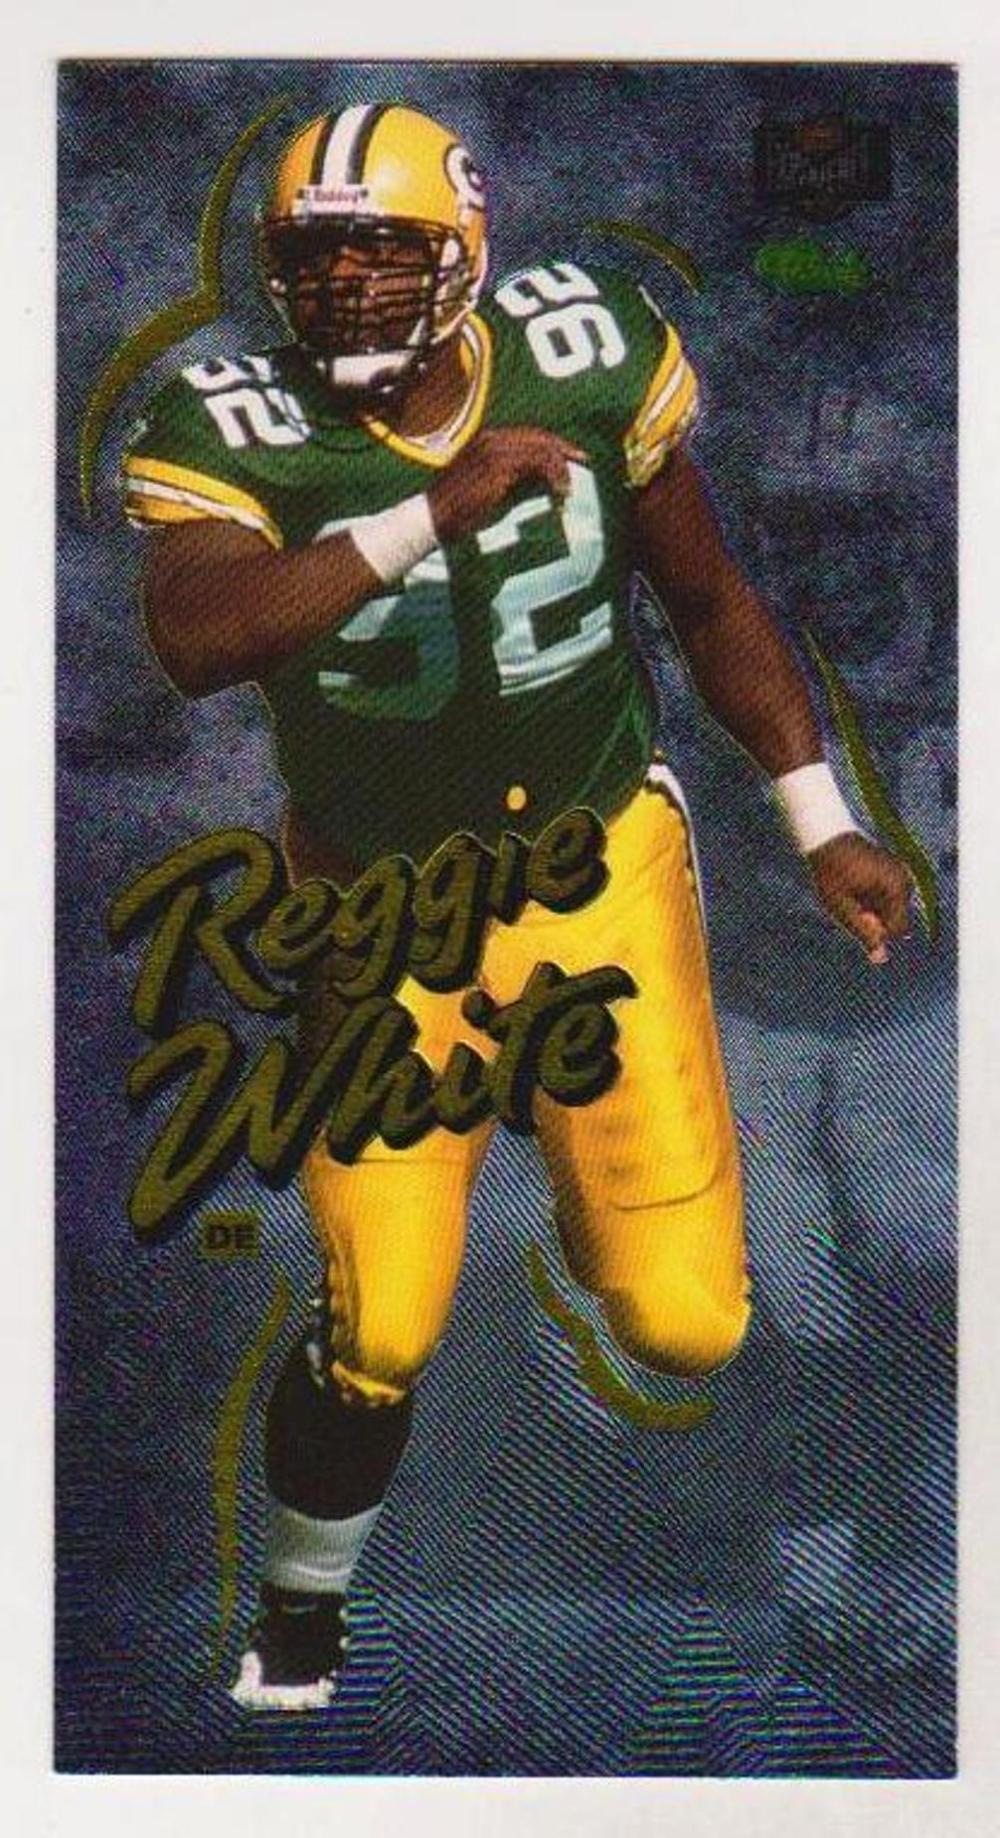 Lot of 5 1995 Classic NFL Experience Reggie White #15 Of 15 Cards - Scarce